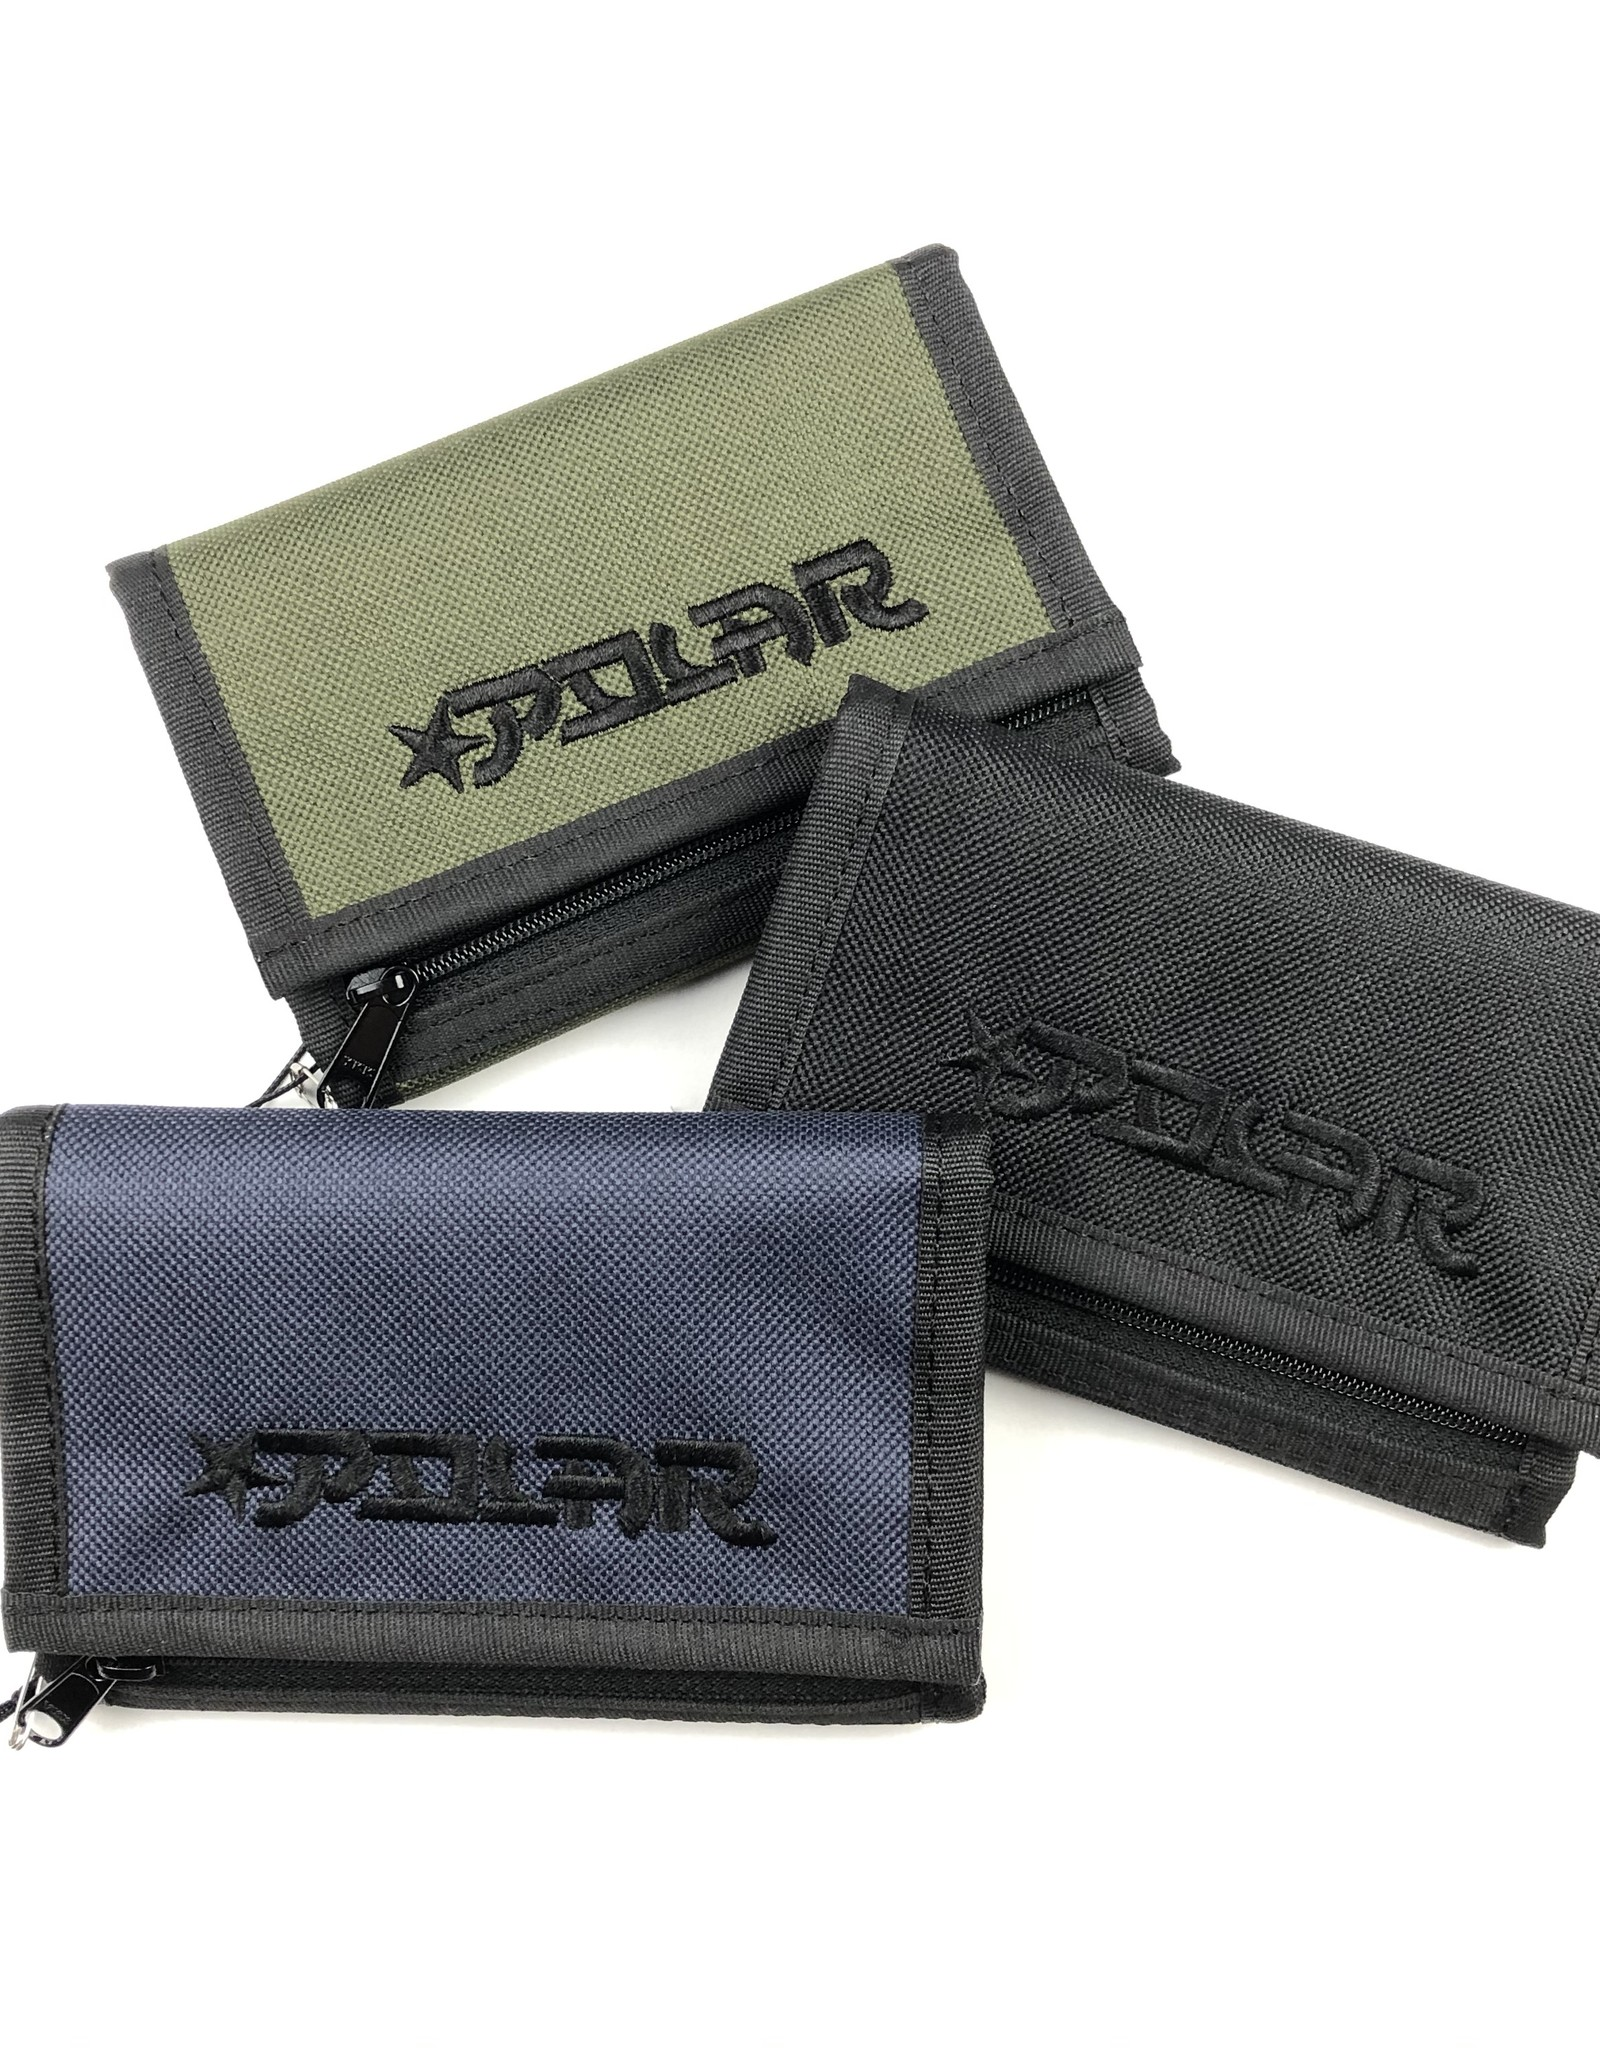 POLAR STAR KEY WALLET - (ALL COLORS)